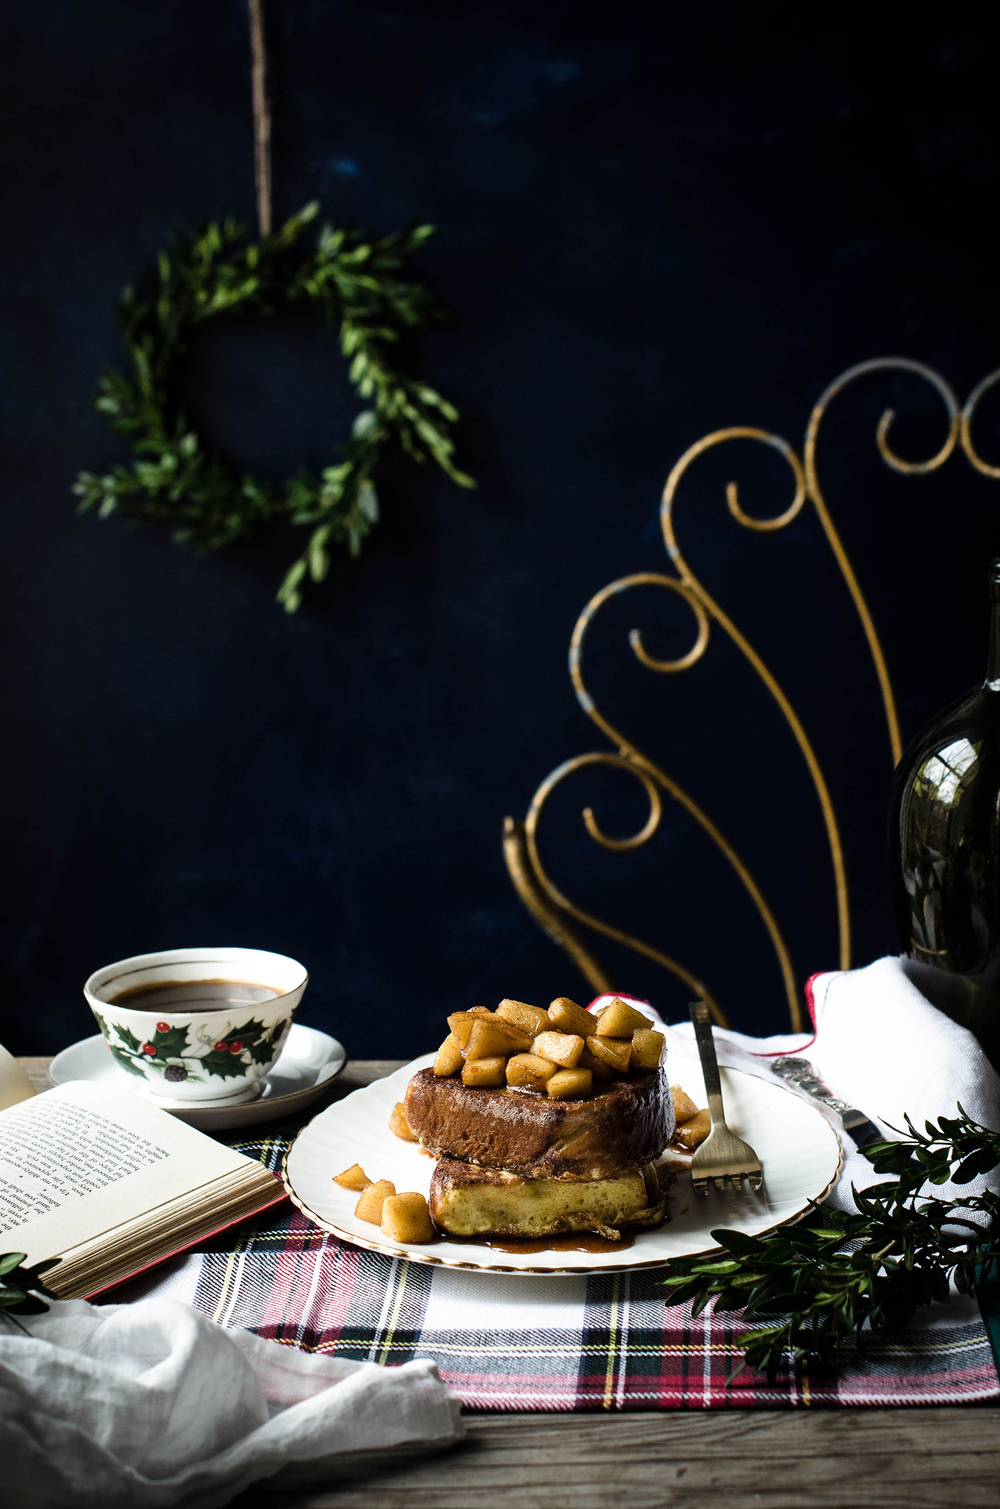 ROSE & IVY JOURNAL CHALLAH FRENCH TOAST WITH MAPLE APPLE COMPOTE